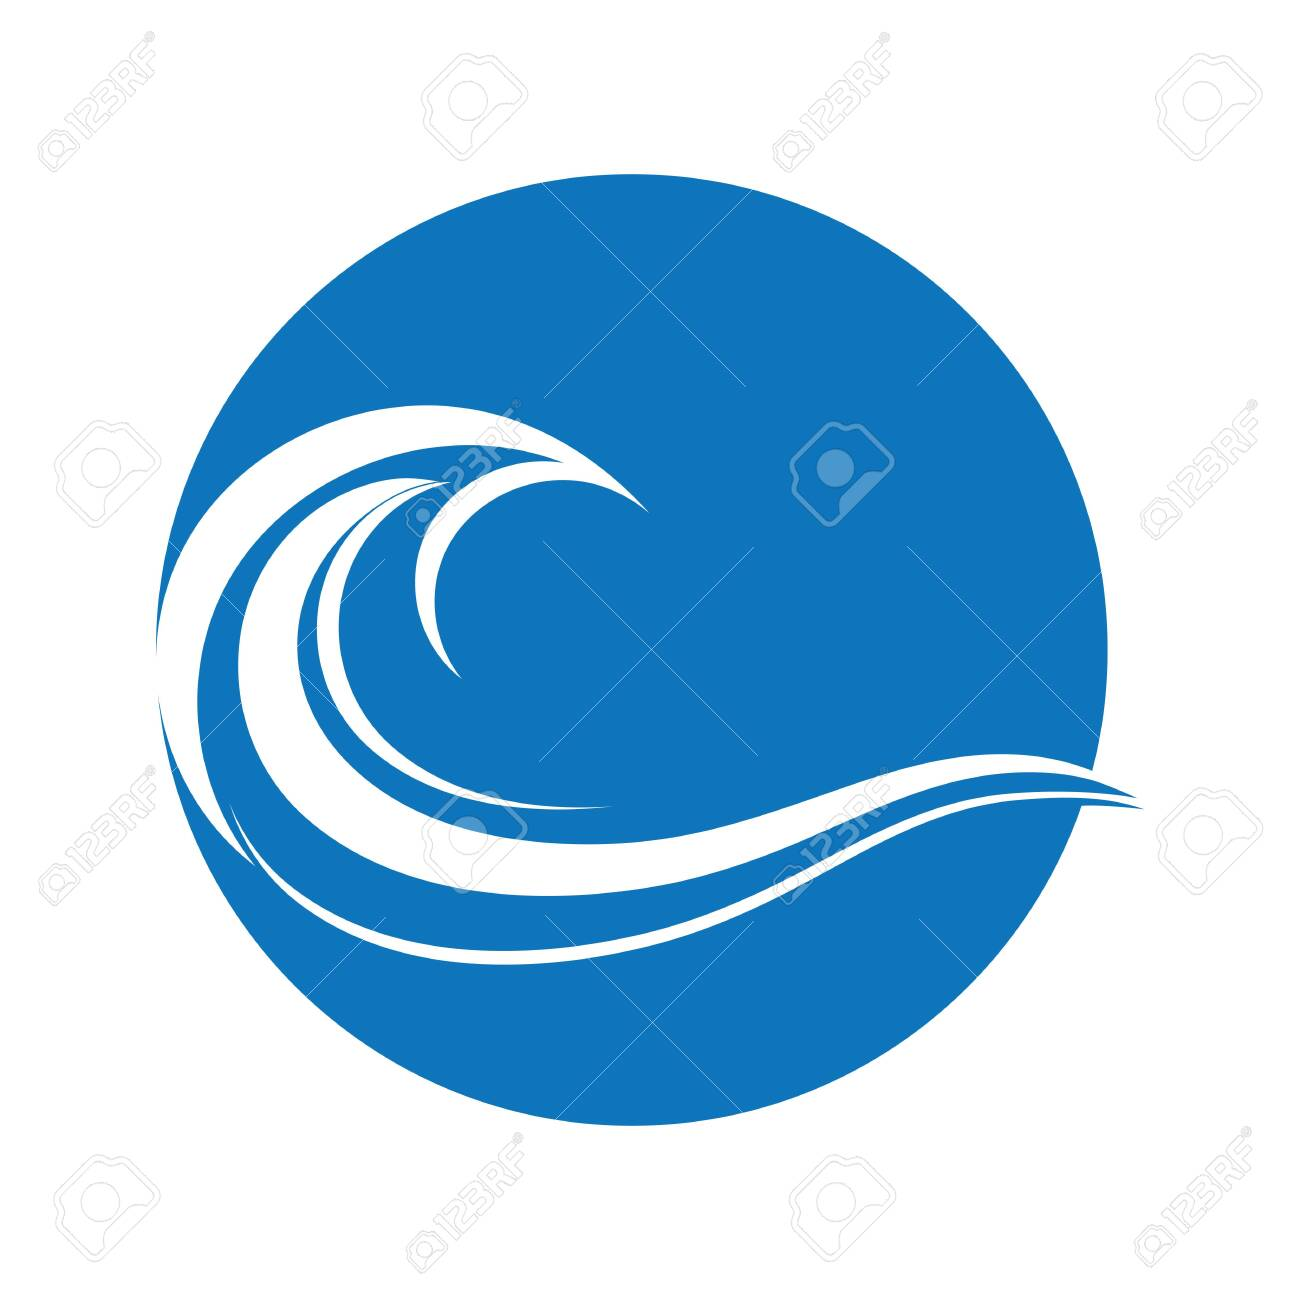 Water Wave symbol and icon Logo Template vector - 146661499